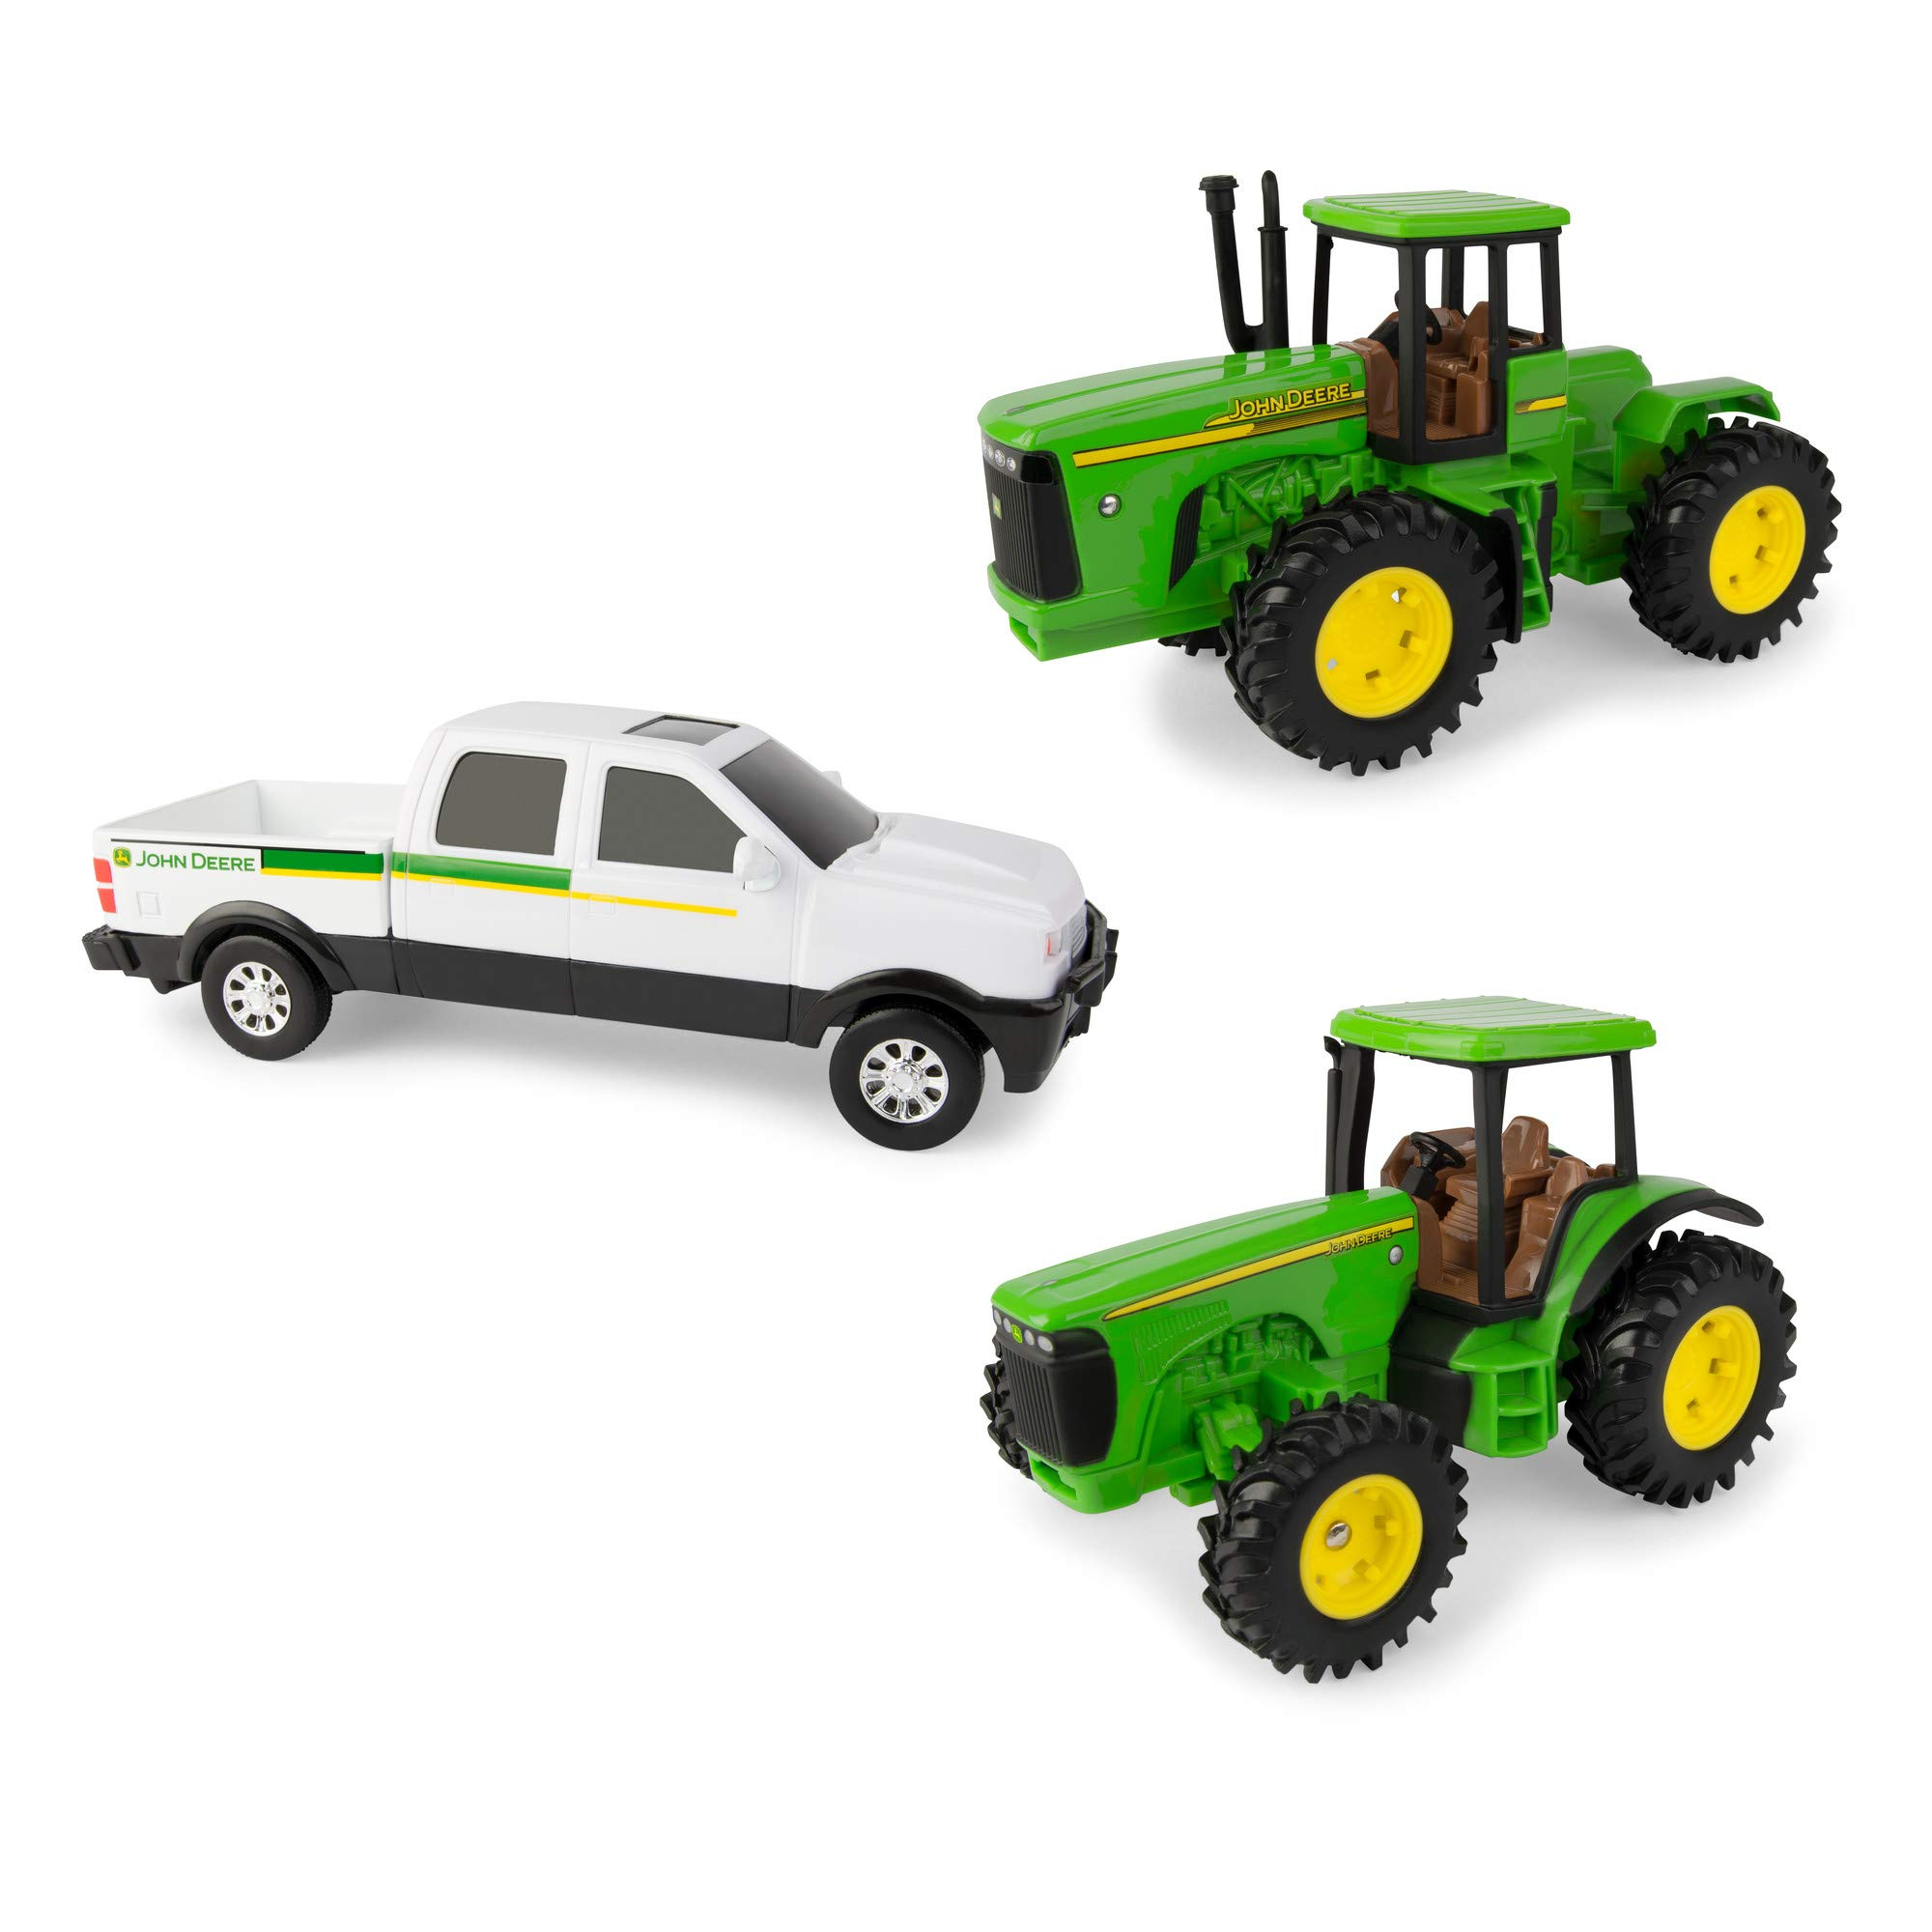 ERTL John Deere Toy Truck & Toy Tractor Farm Toy Vehicle Value Set (Pack of 3)